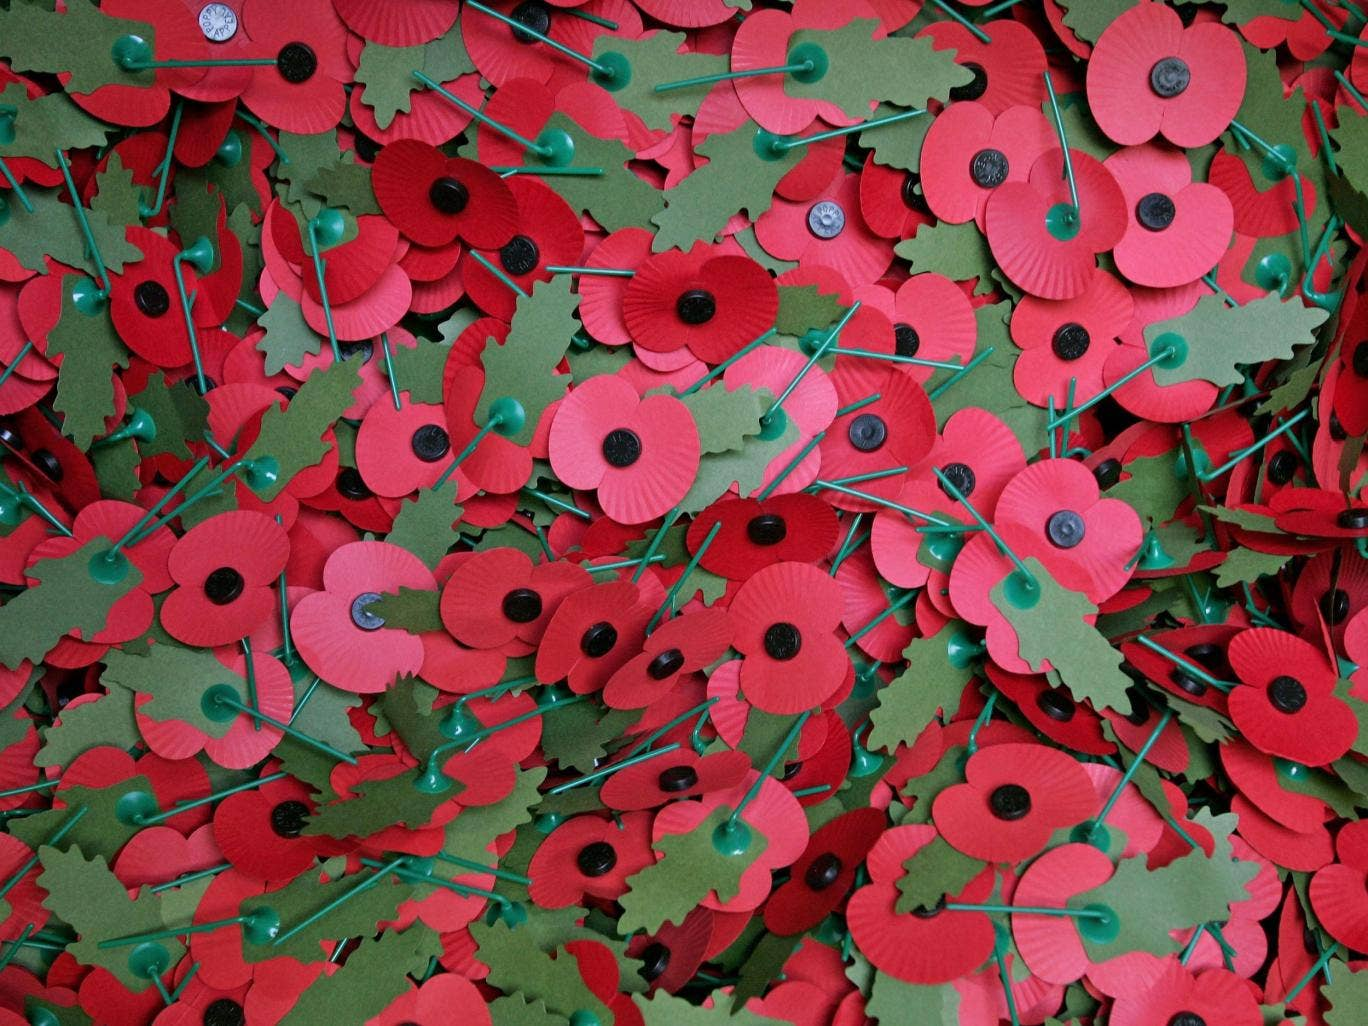 Veterans Advice On How To Wear Remembrance Day Poppy Is Shared